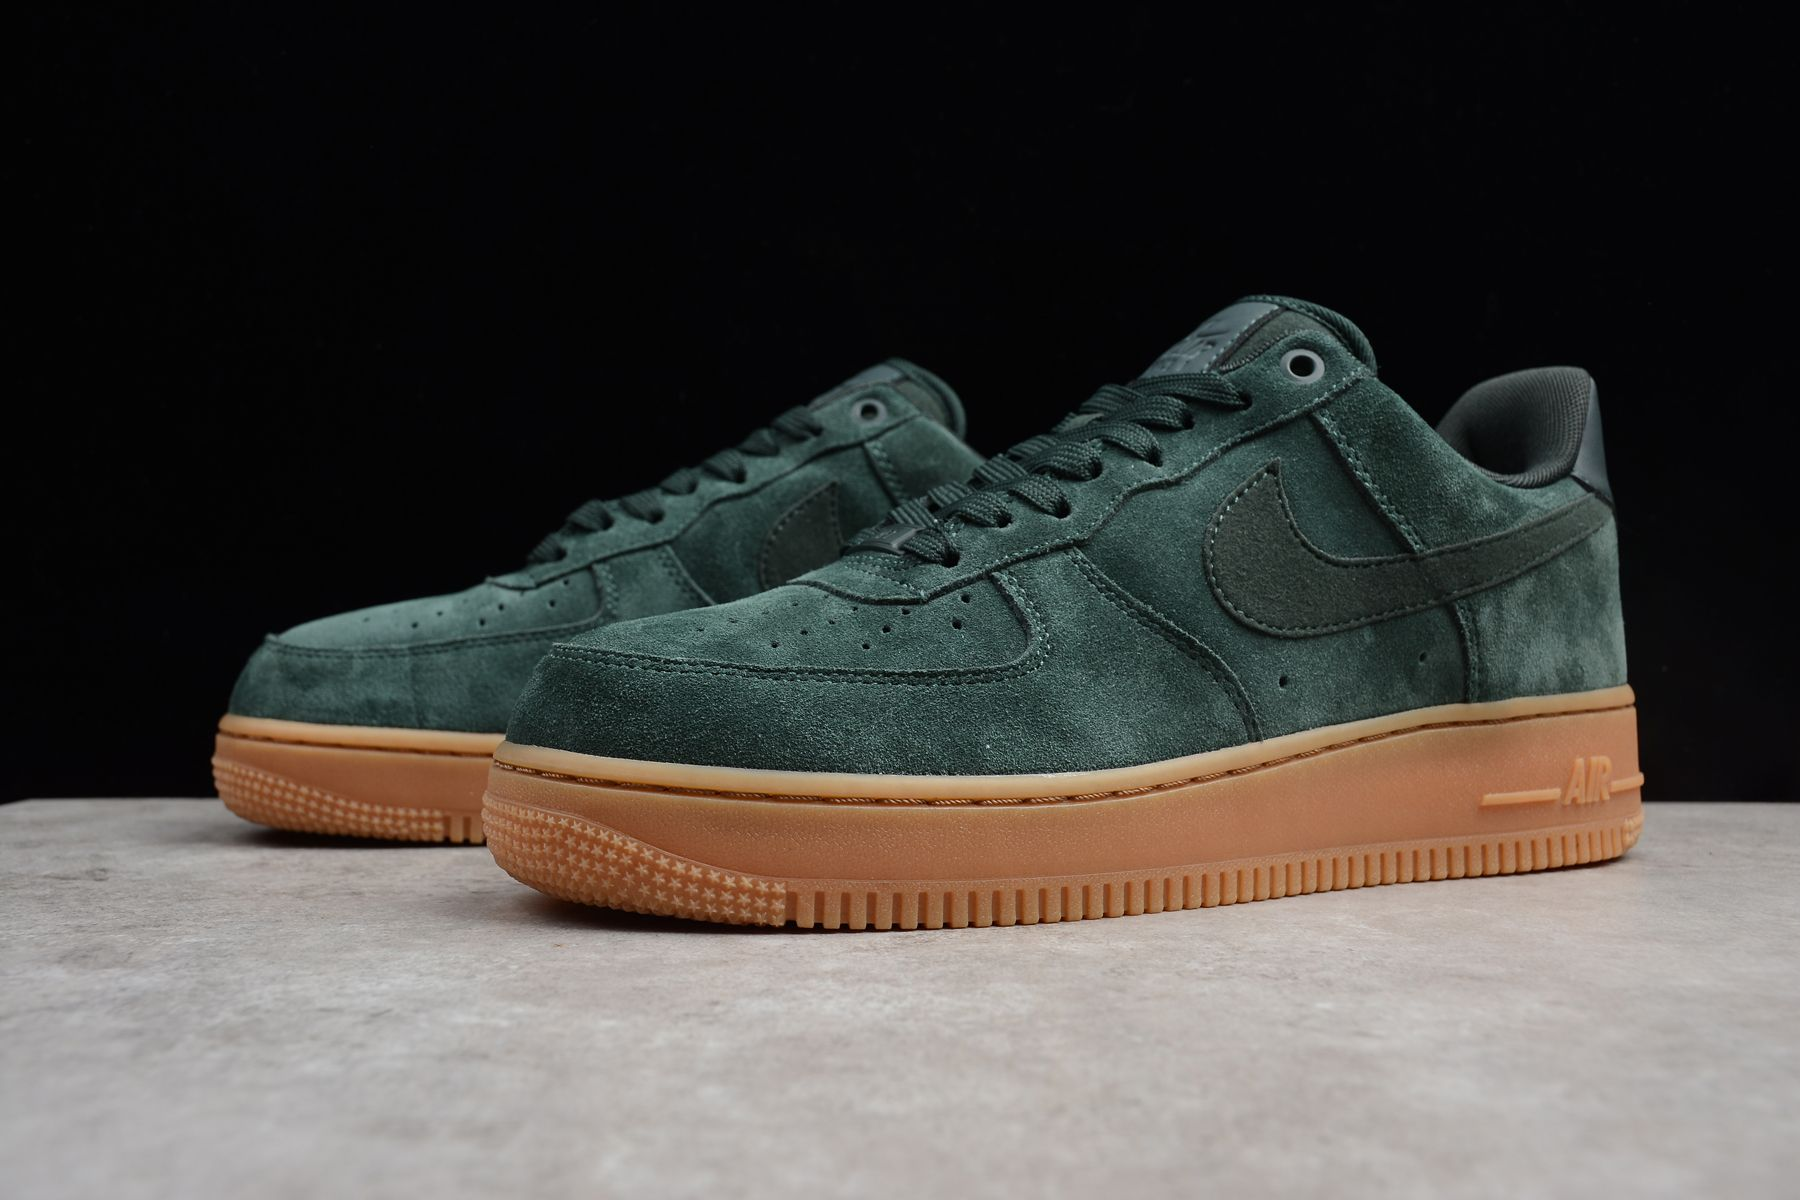 Discount Mens and Women's Nike Air Force 1 '07 LV8 Suede